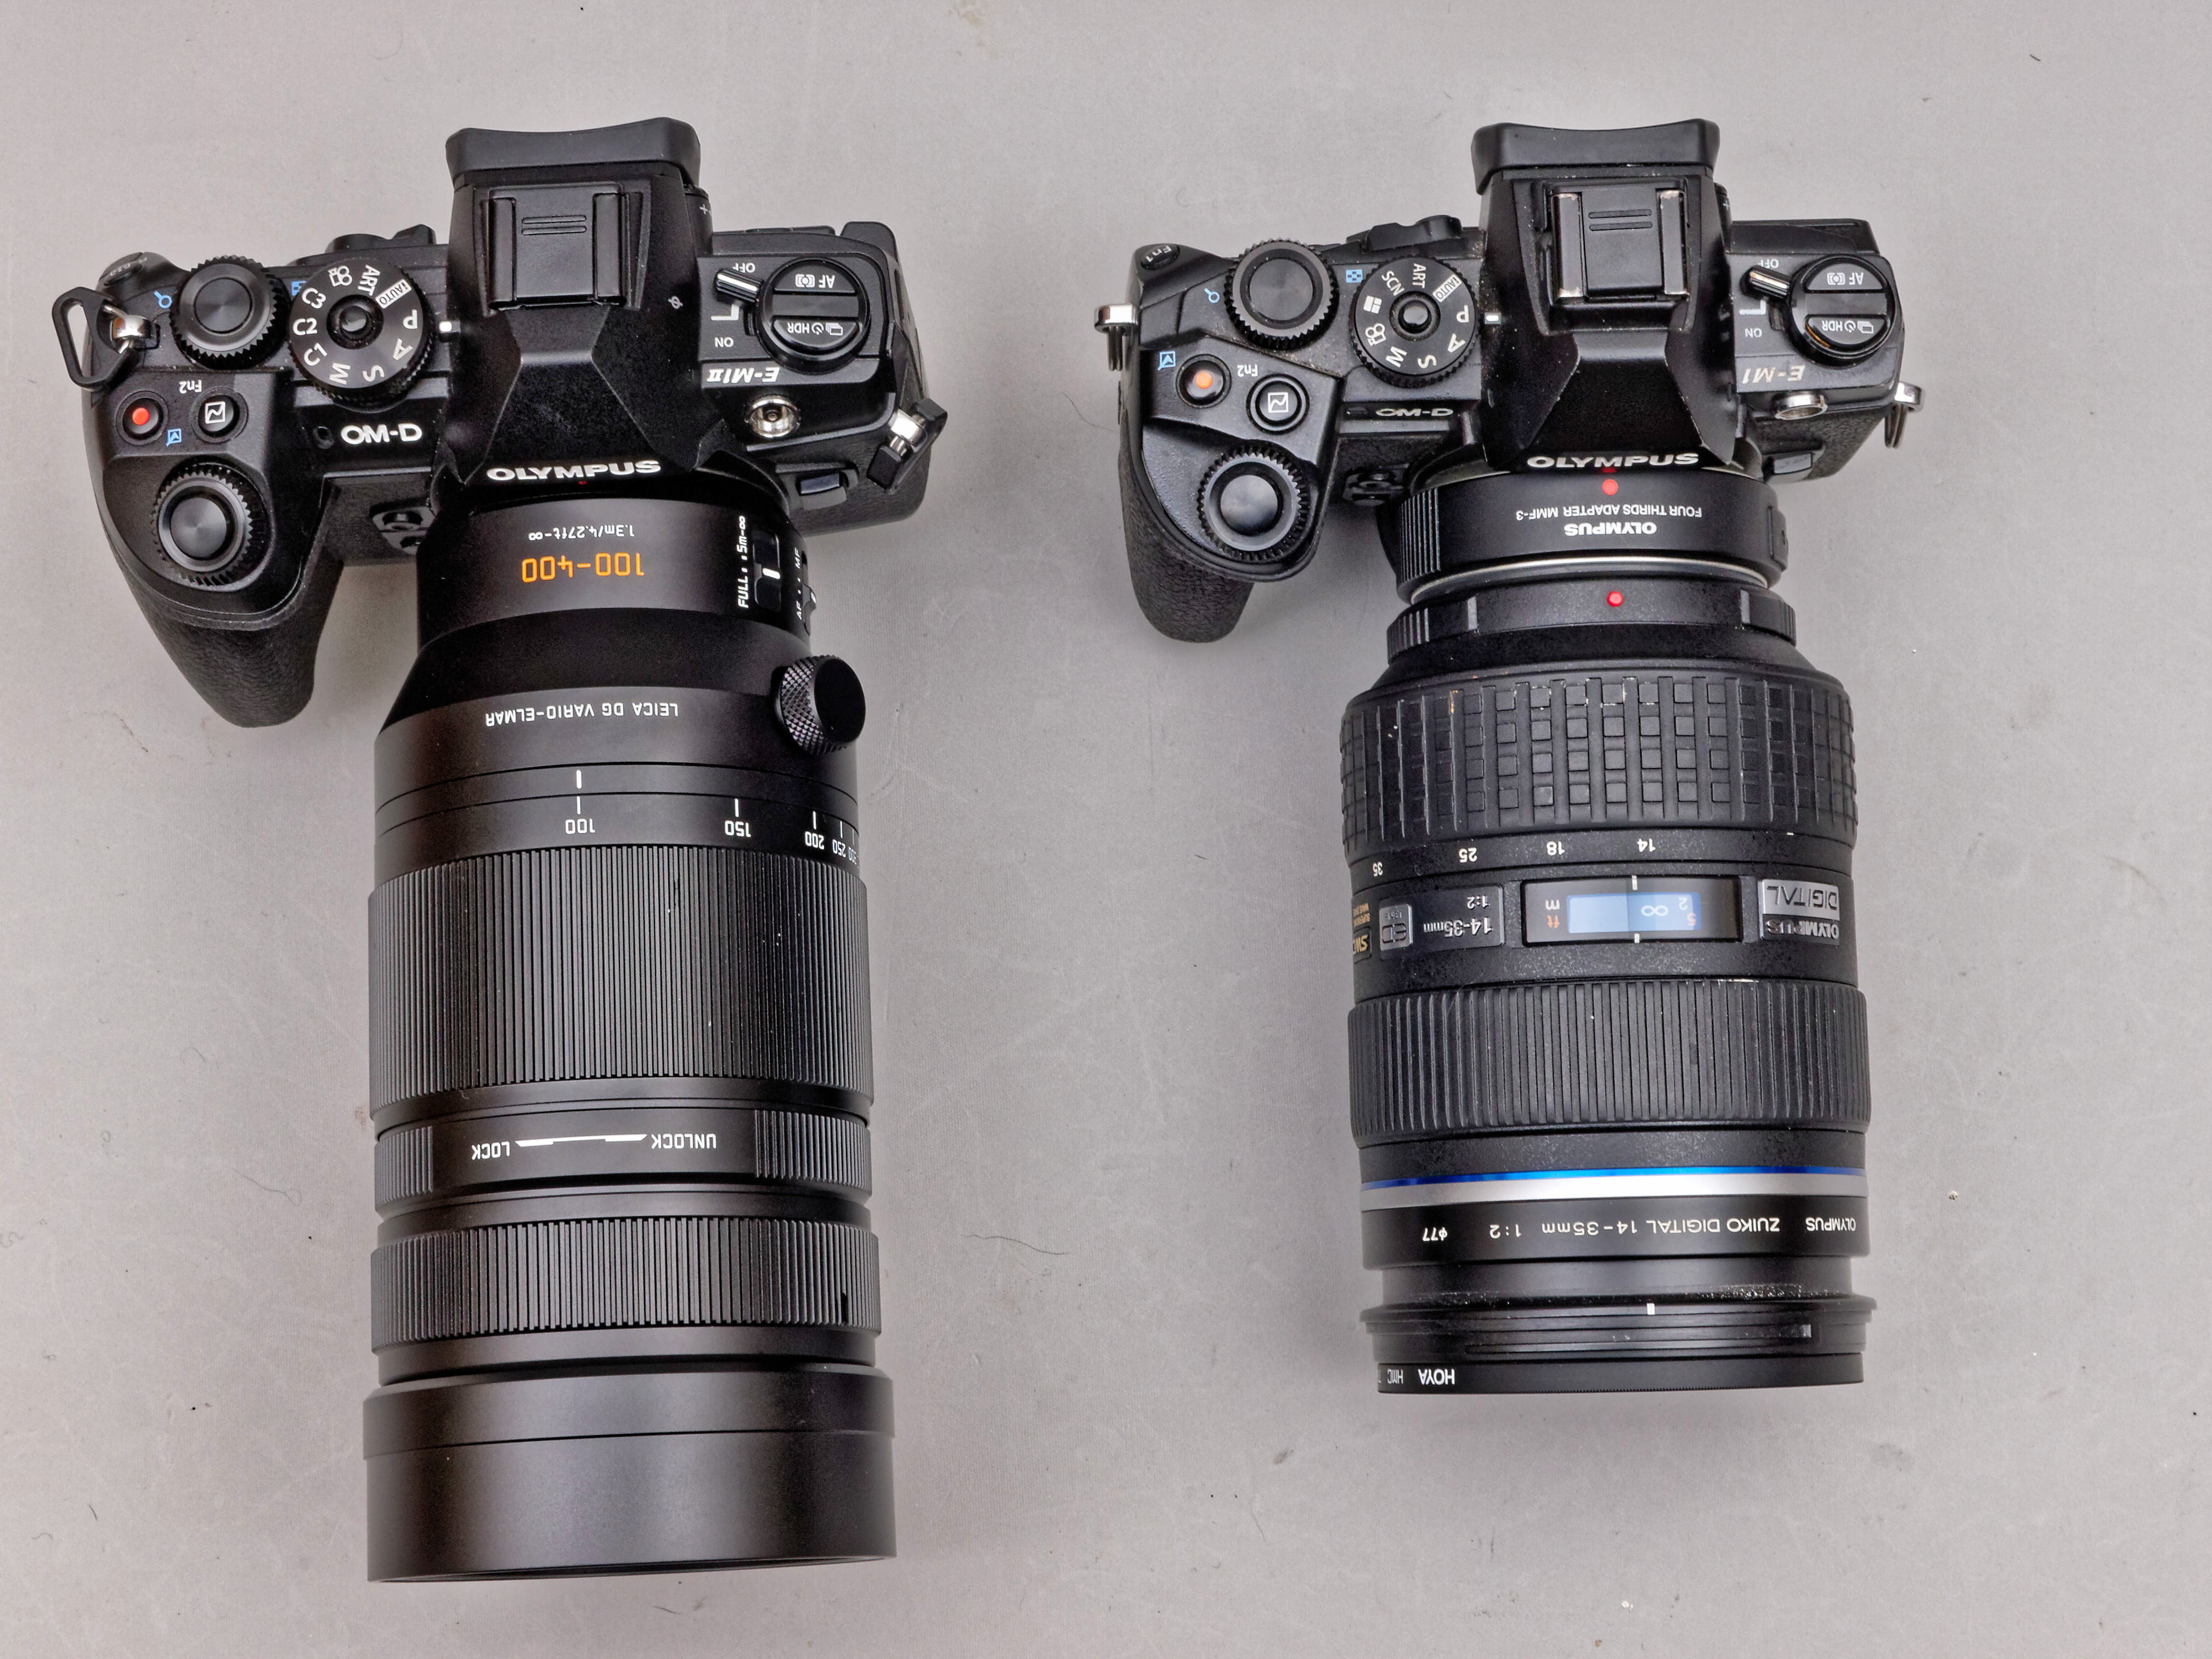 This should be Leica-14-35-3.jpeg.  Is it missing?